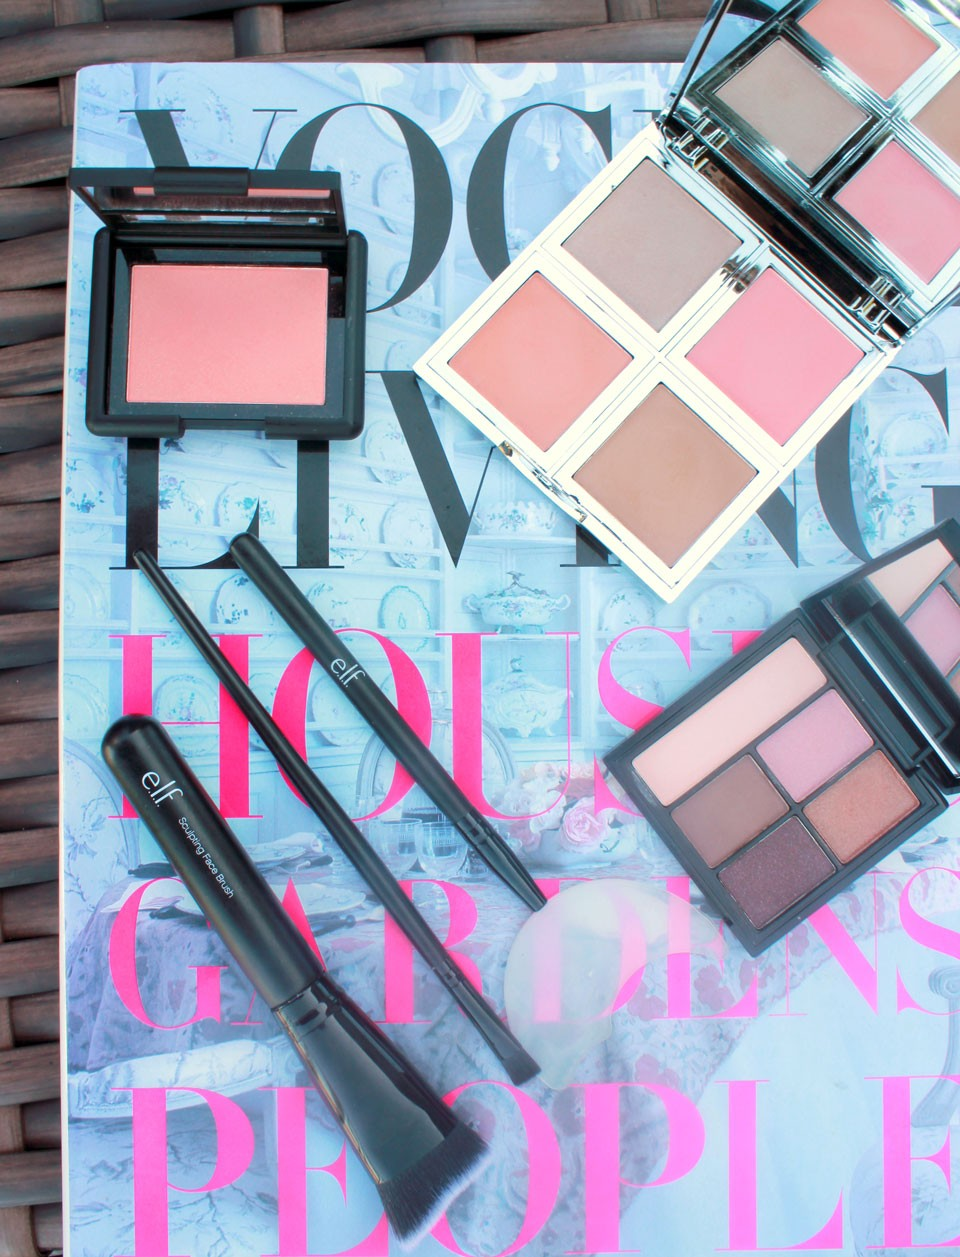 elf cruelty free beauty products